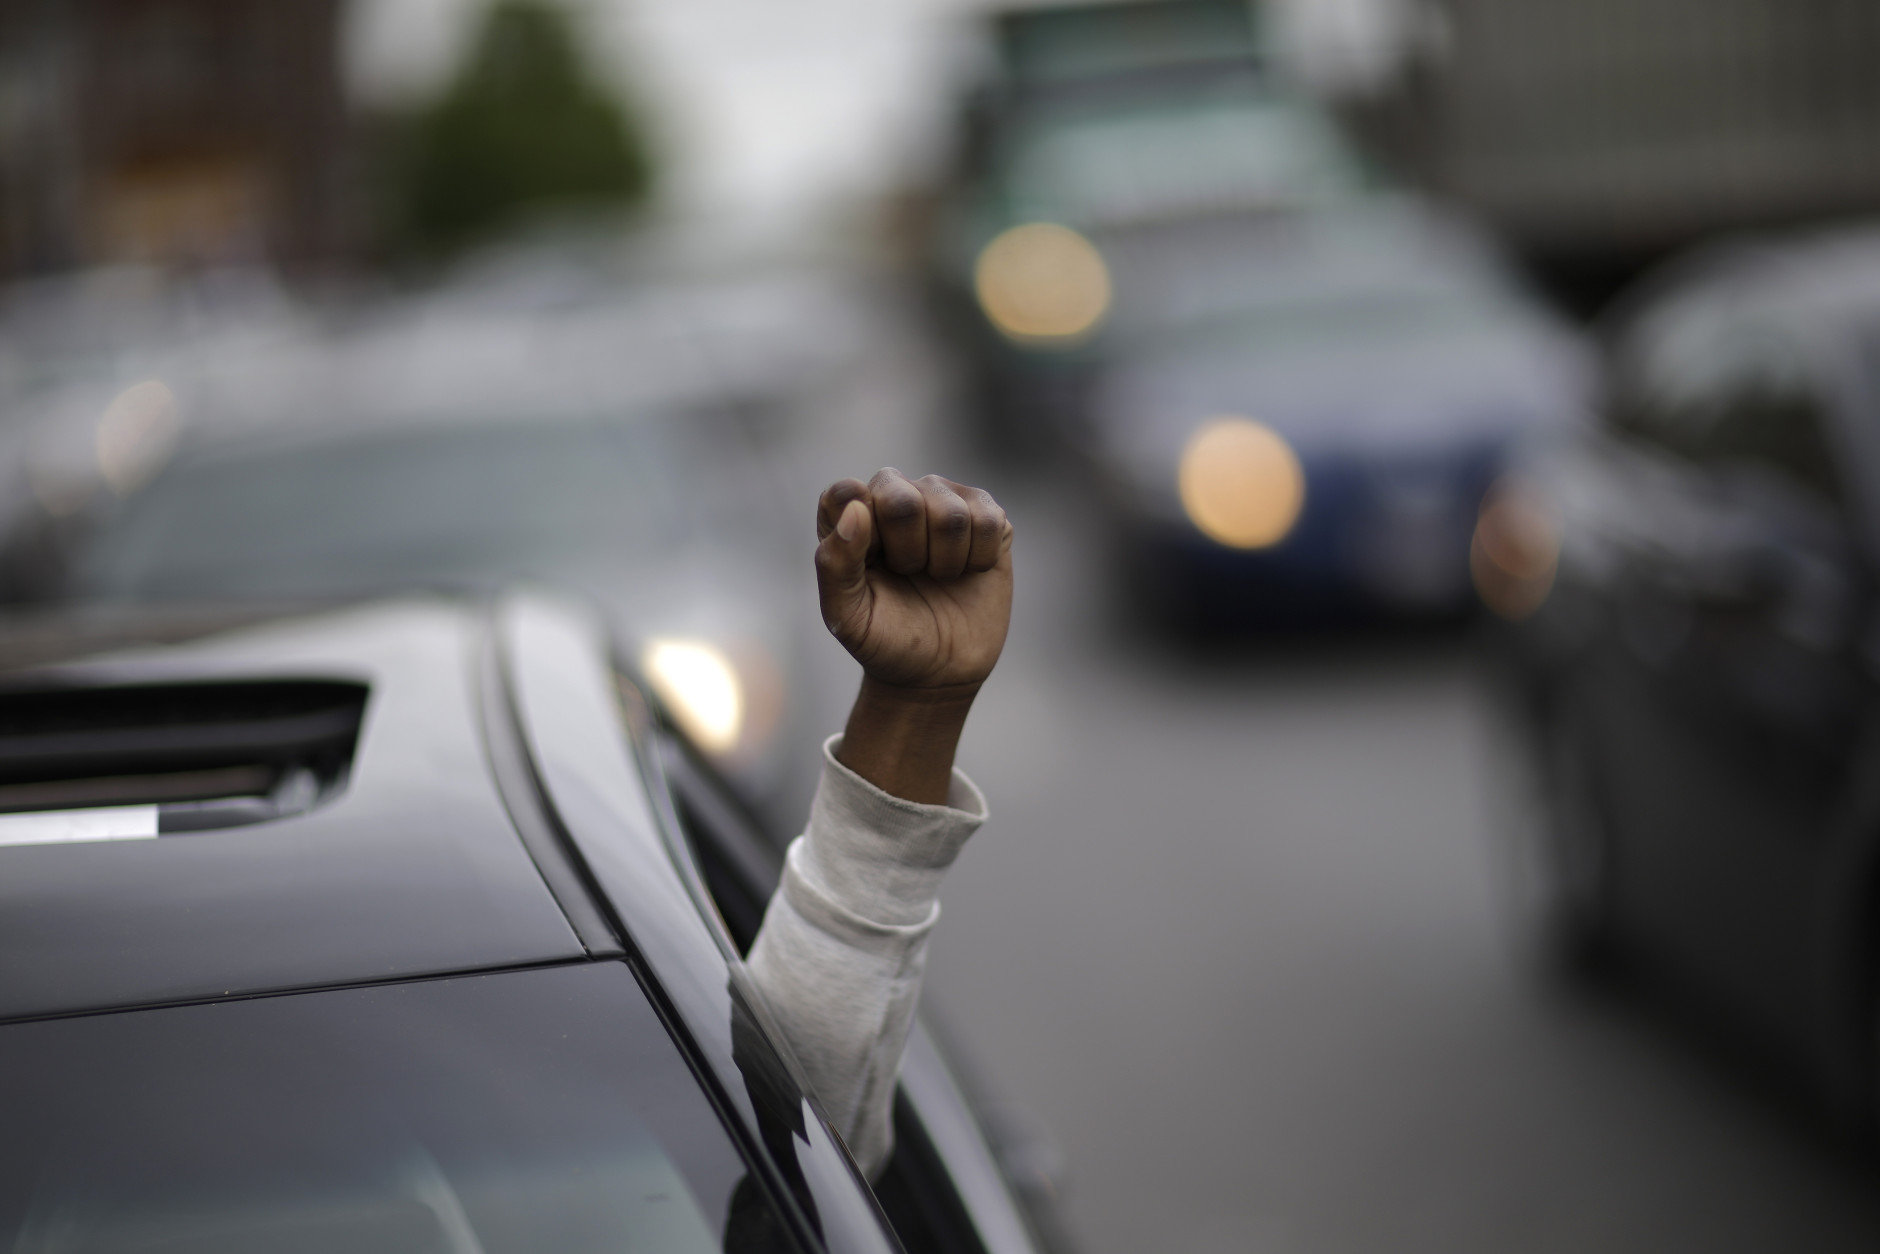 Meach Johnson celebrates on Friday, May 1, 2015, after State's Attorney Marilyn J. Mosby announced criminal charges against all six officers suspended after Freddie Gray suffered a fatal spinal injury while in police custody in Baltimore.  Mosby announced the stiffest charge, second-degree depraved heart murder, against the driver of the police van. Other officers faced charges of involuntary manslaughter, assault and illegal arrest. (AP Photo/David Goldman)